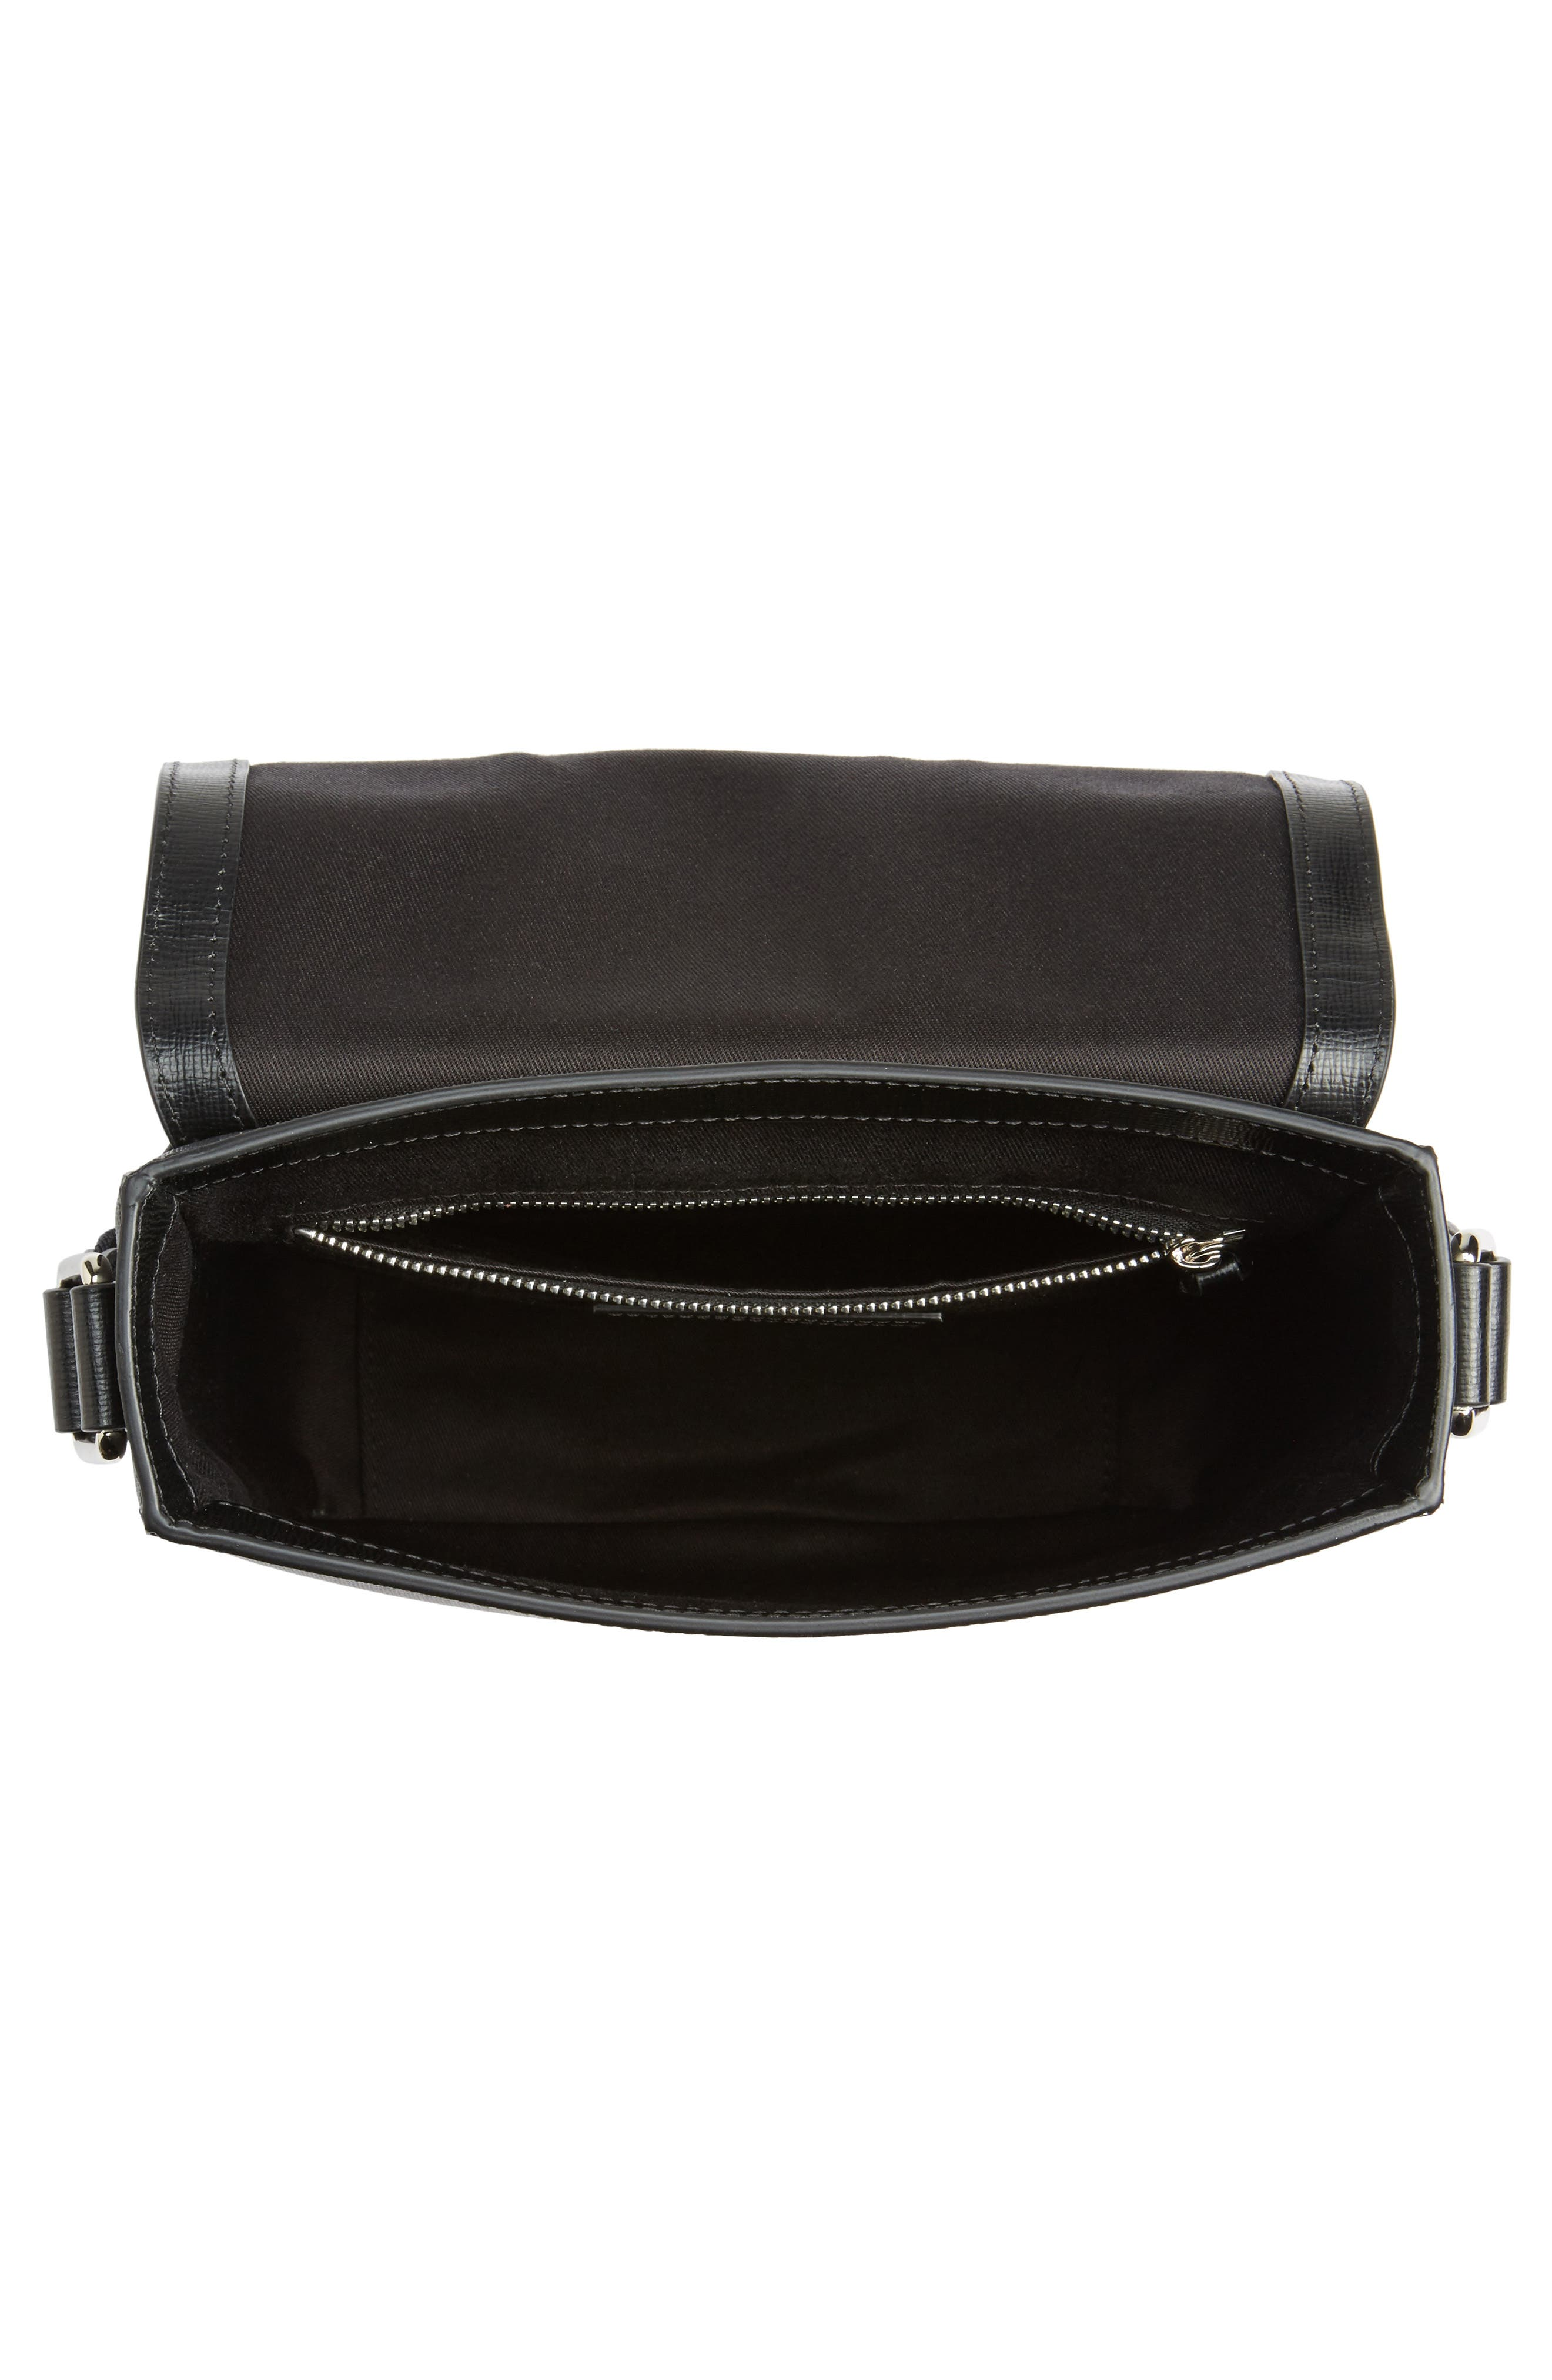 Greenford Crossbody Bag,                             Alternate thumbnail 4, color,                             Charcoal/ Black